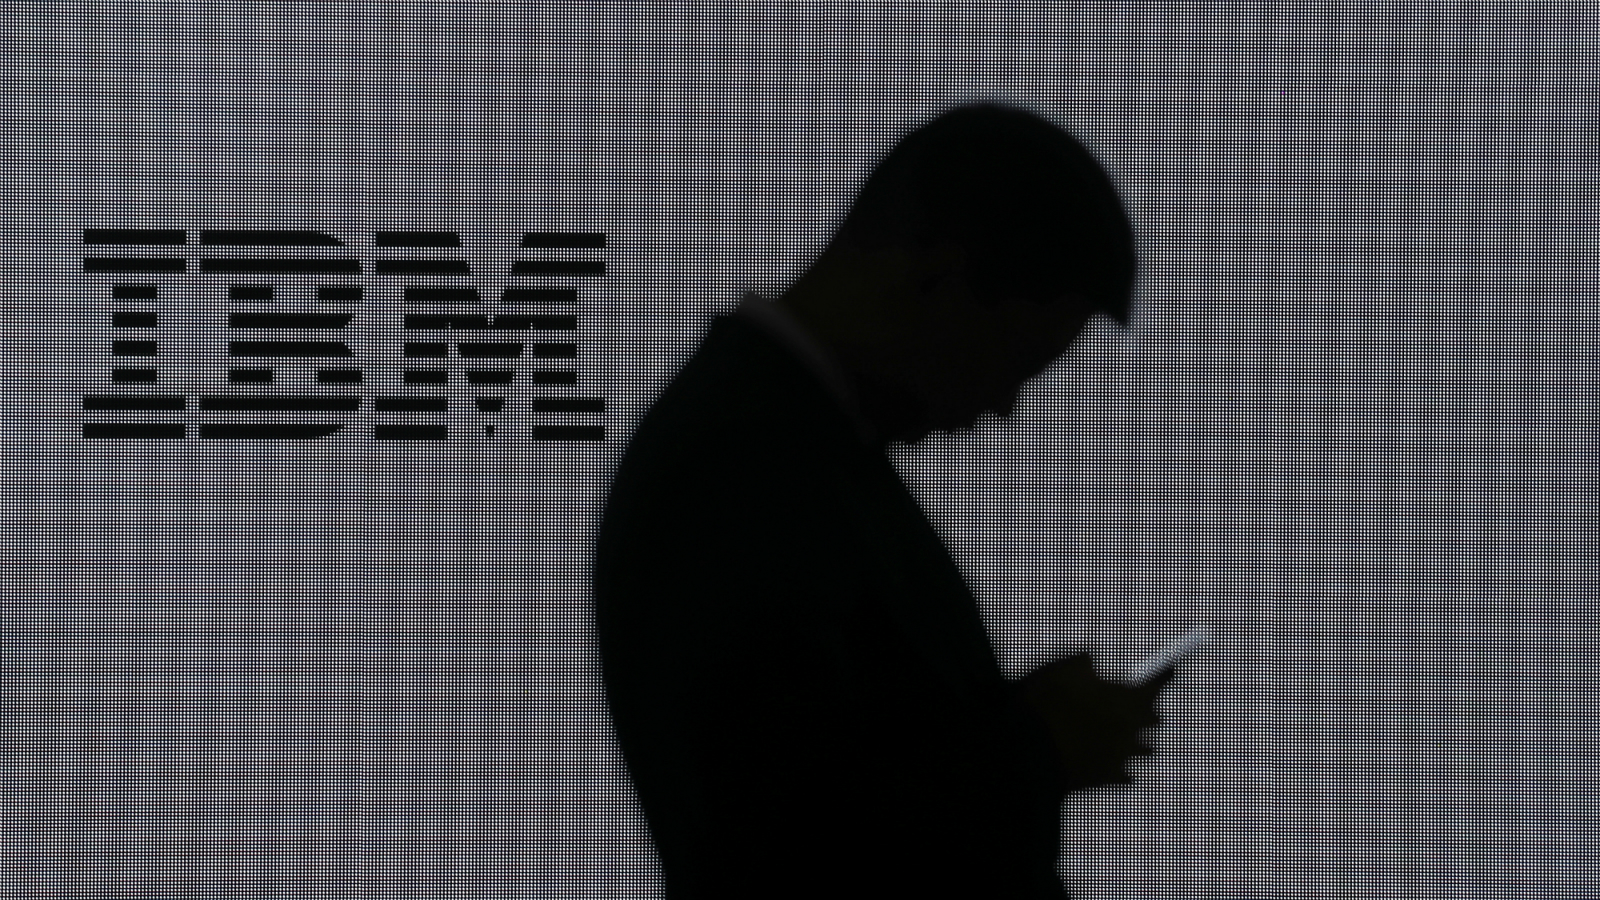 IBM (NYSE:IBM) Stake Lowered by Landaas & Co. WI ADV